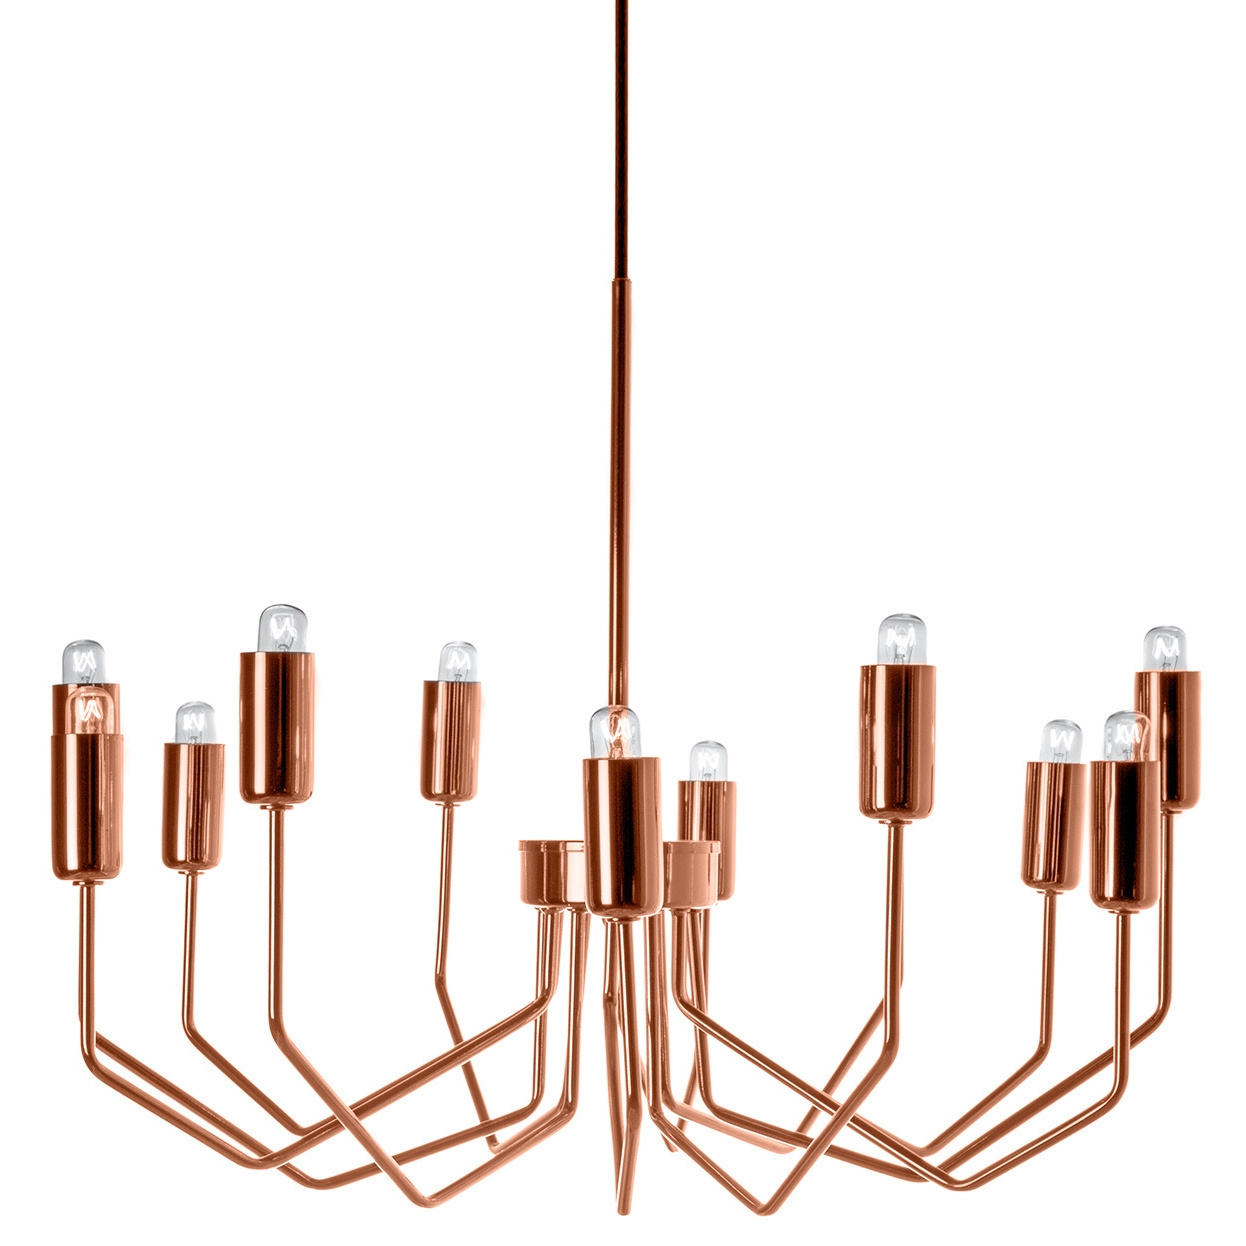 Olbia Copper Chandelier More Chandeliers Ideas In Copper Chandeliers (#11 of 12)